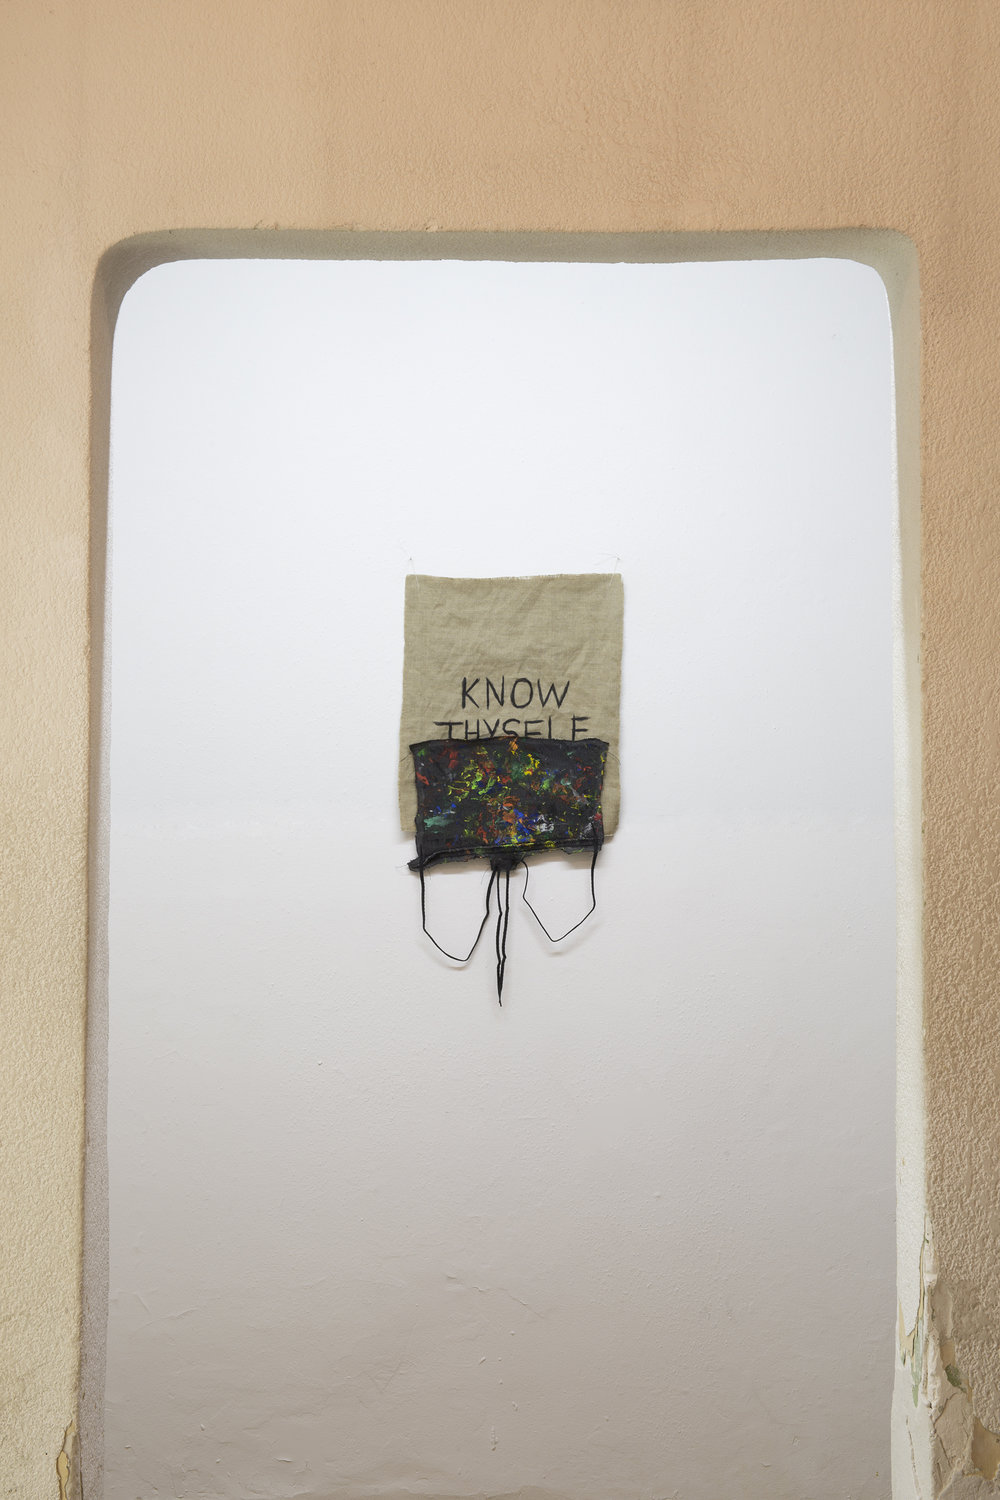 Untitled (Know Thyself), 2015. Acrylic paint on linen and cloth, shoelaces, and thread, 69 x 34.5 cm (27 x 13.5 in)